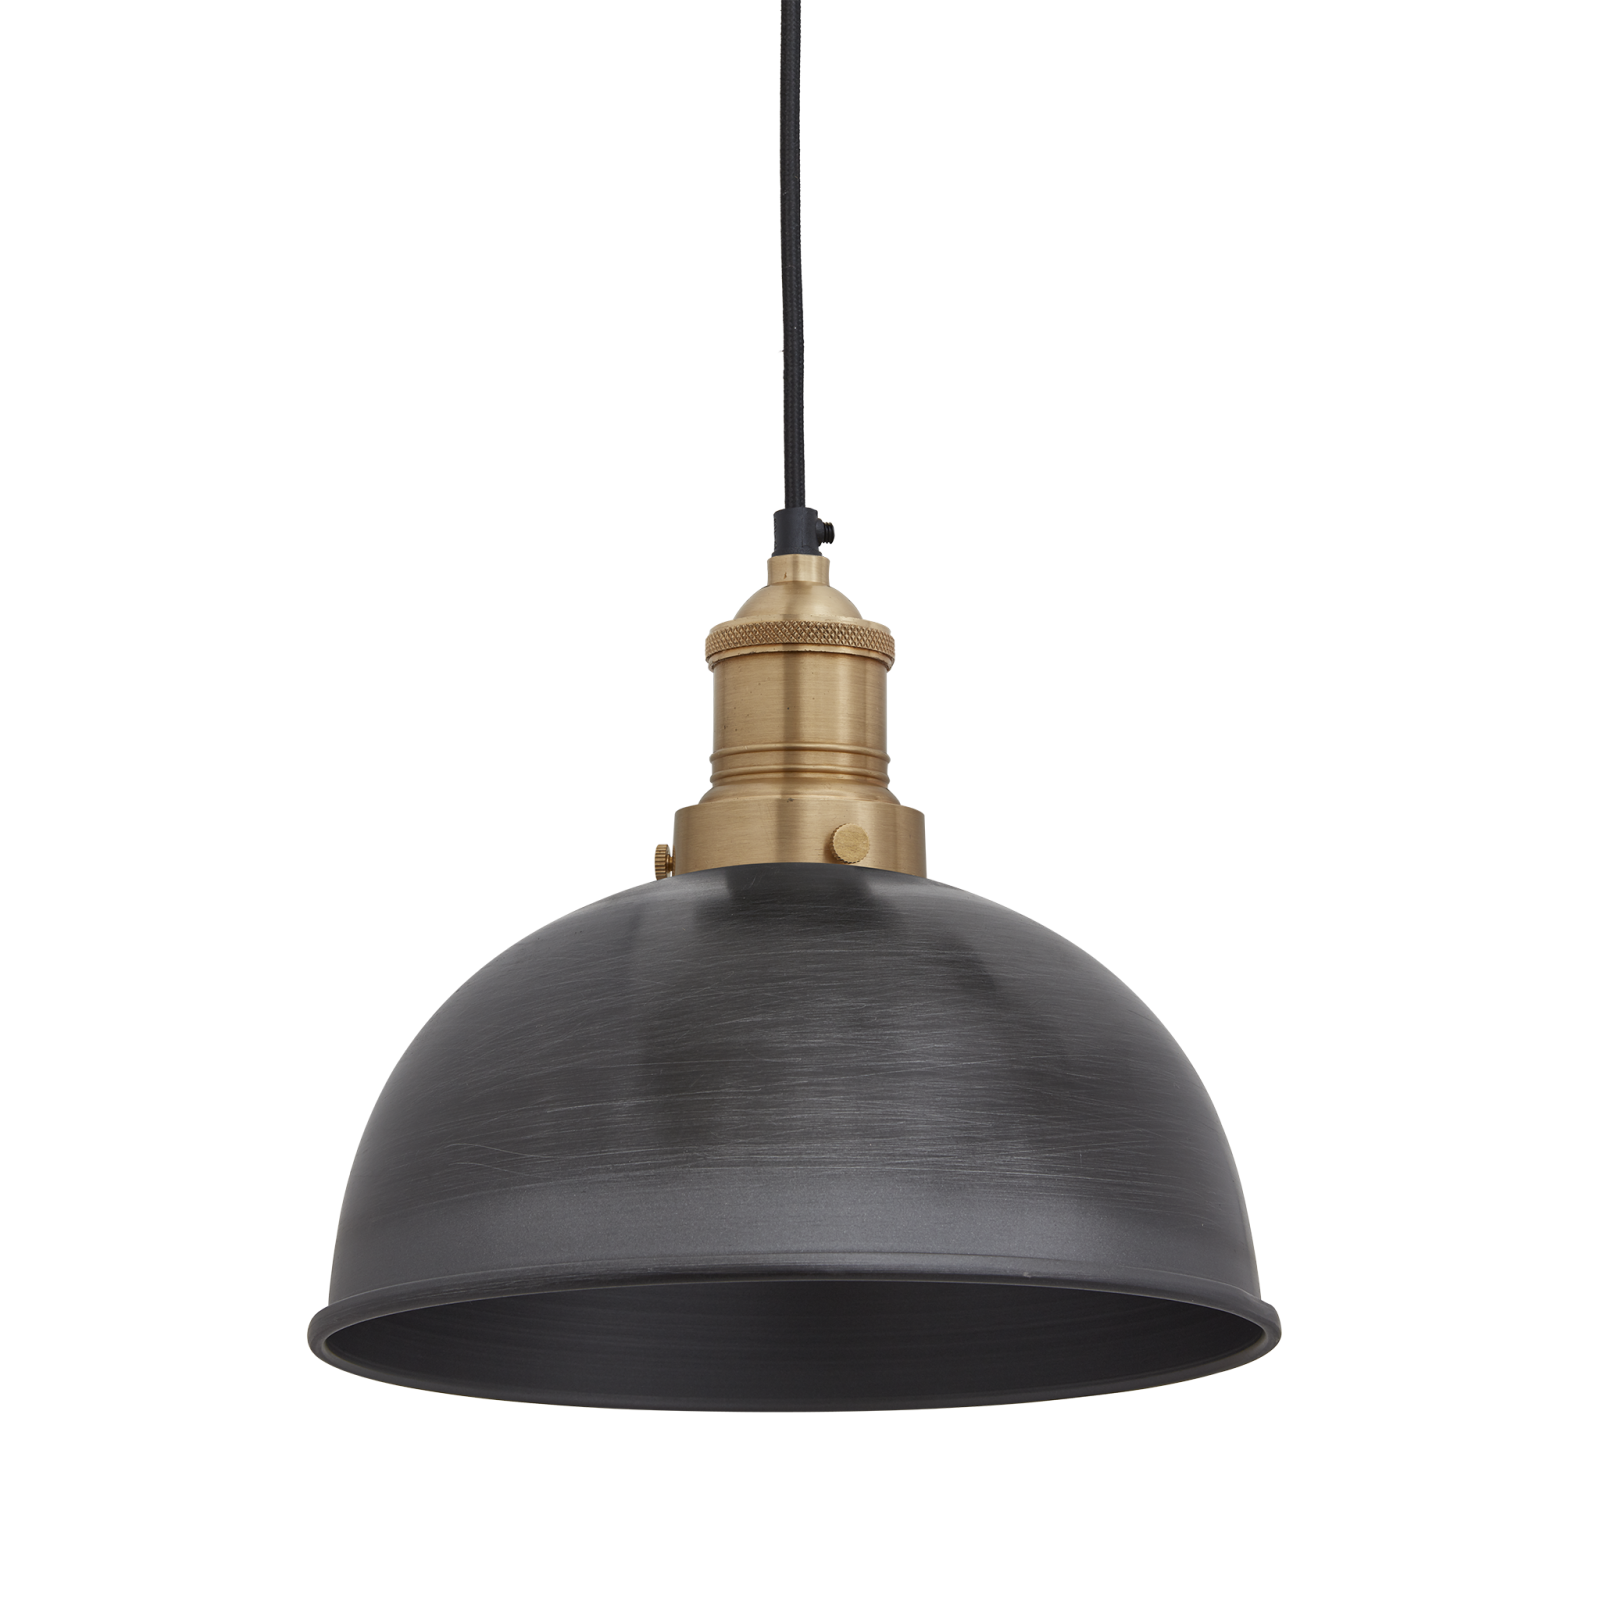 Brooklyn Dome Pendant Light - 8 Inch Brooklyn Dome Pendant - 8 Inch - Pewter - Brass Holder